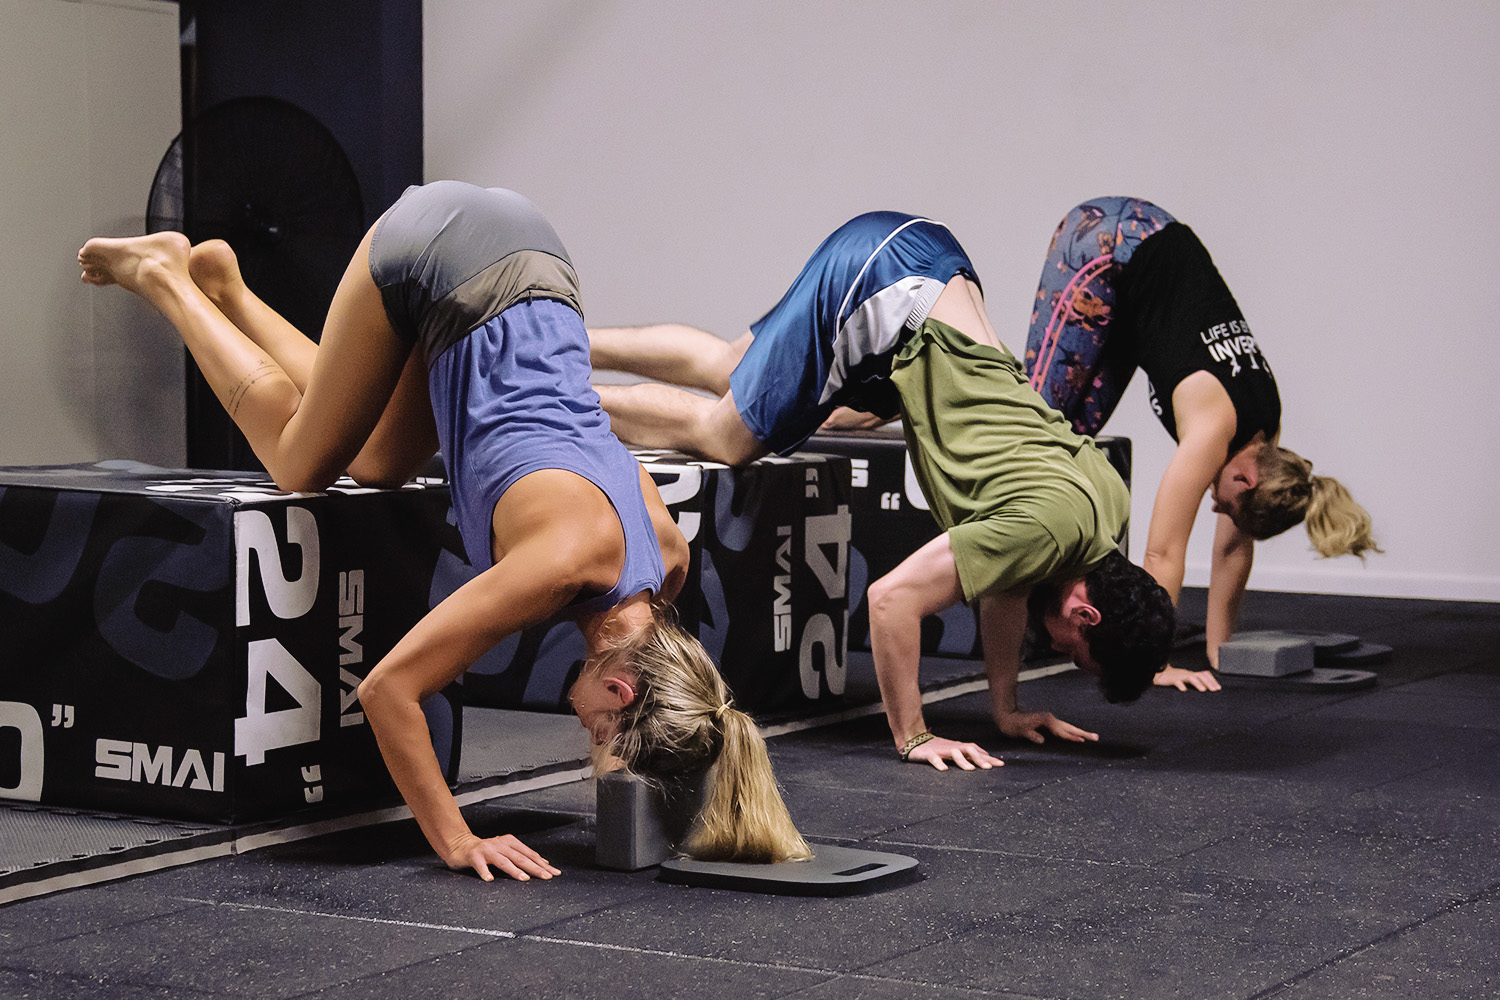 group-pikepushup.jpg